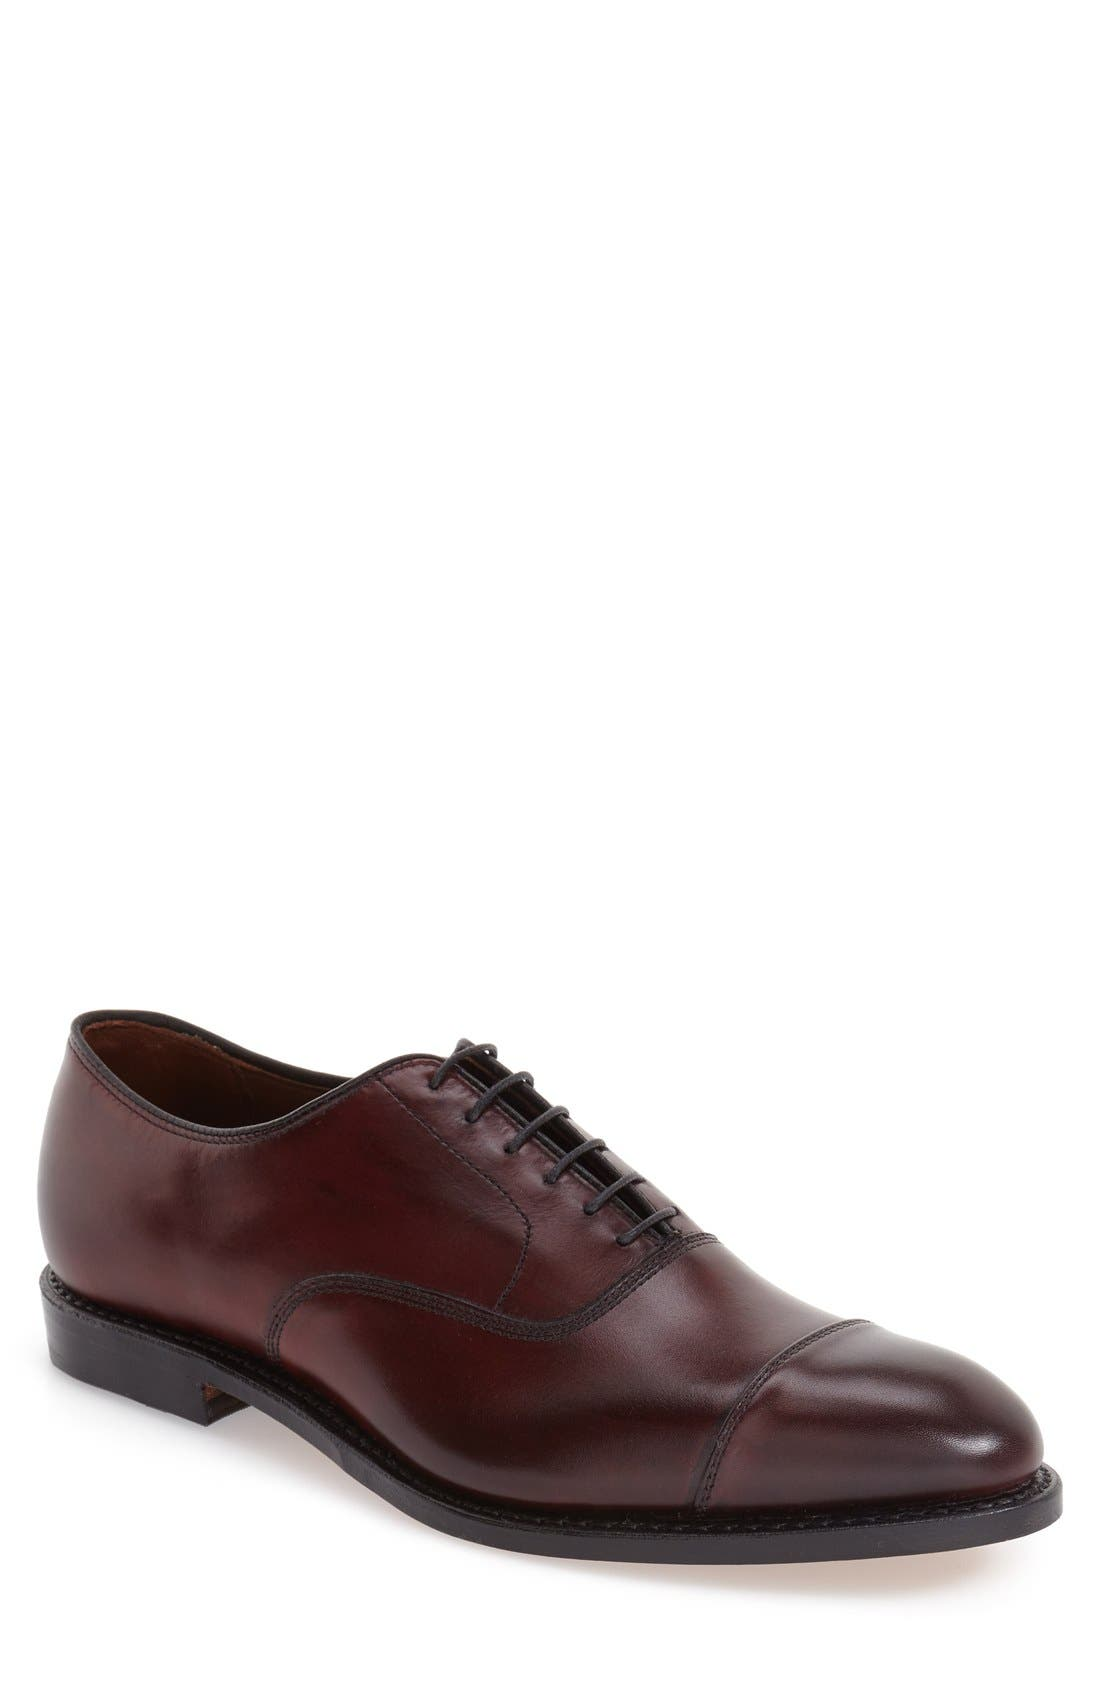 ALLEN EDMONDS 'Park Avenue' Cap Toe Oxford